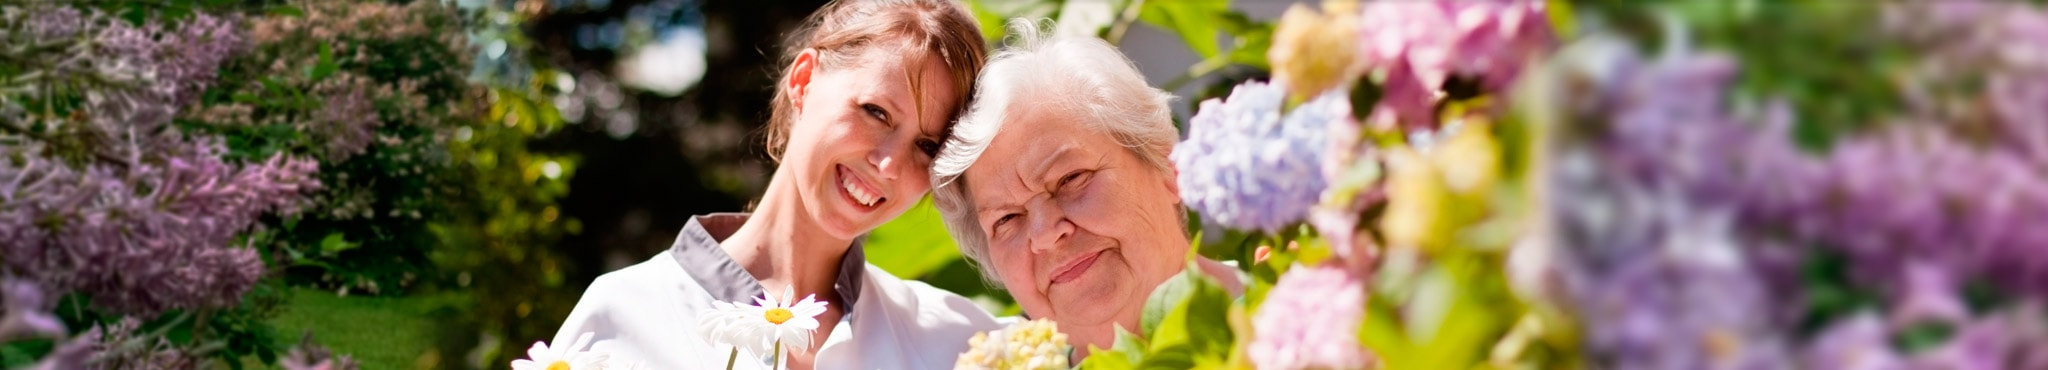 ALZHEIMER'S-AND-DEMENTIA-CAREGIVERS